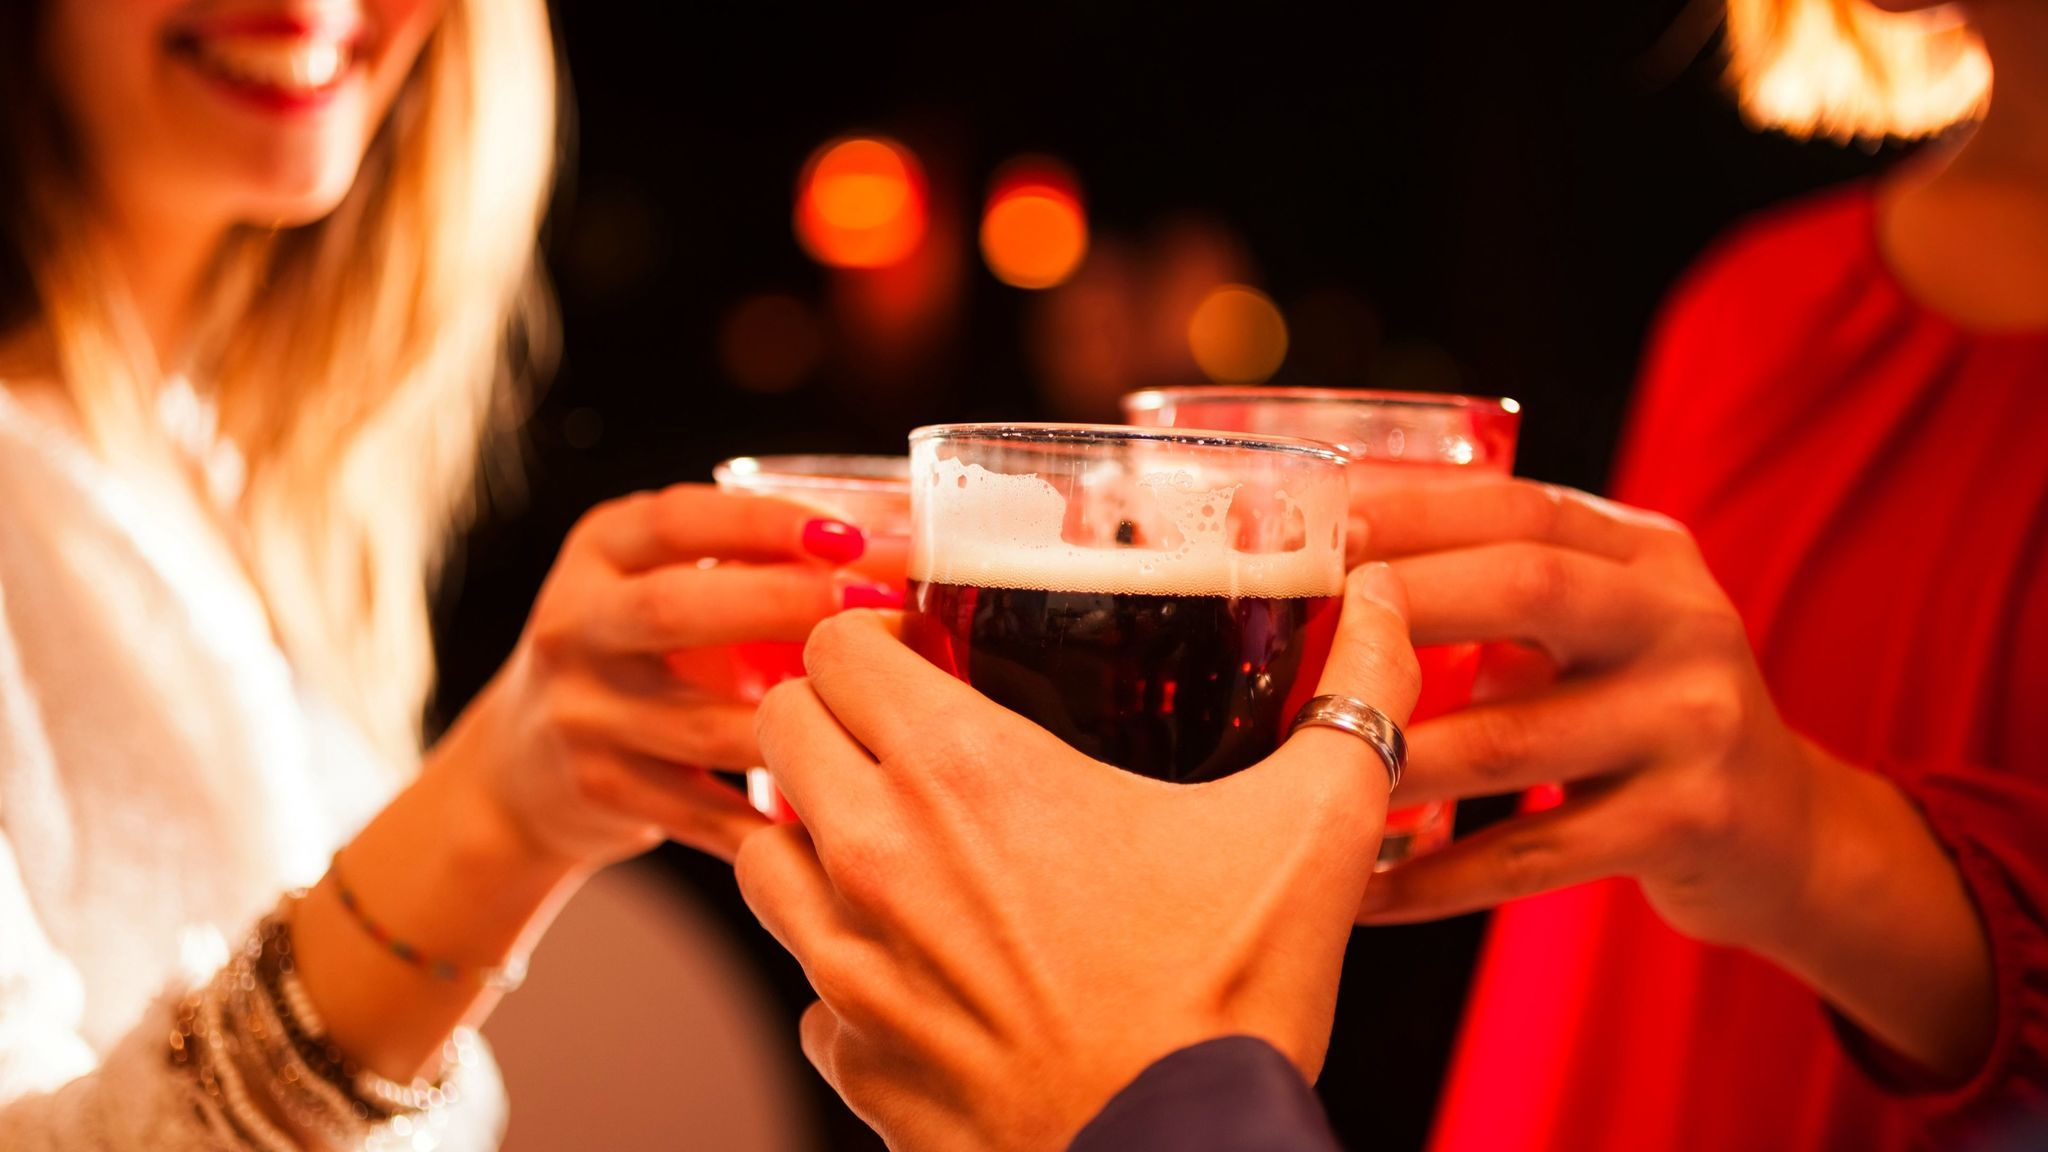 The American Cancer Society recommends men consume no more than two alcoholic drinks per day, and women only one.